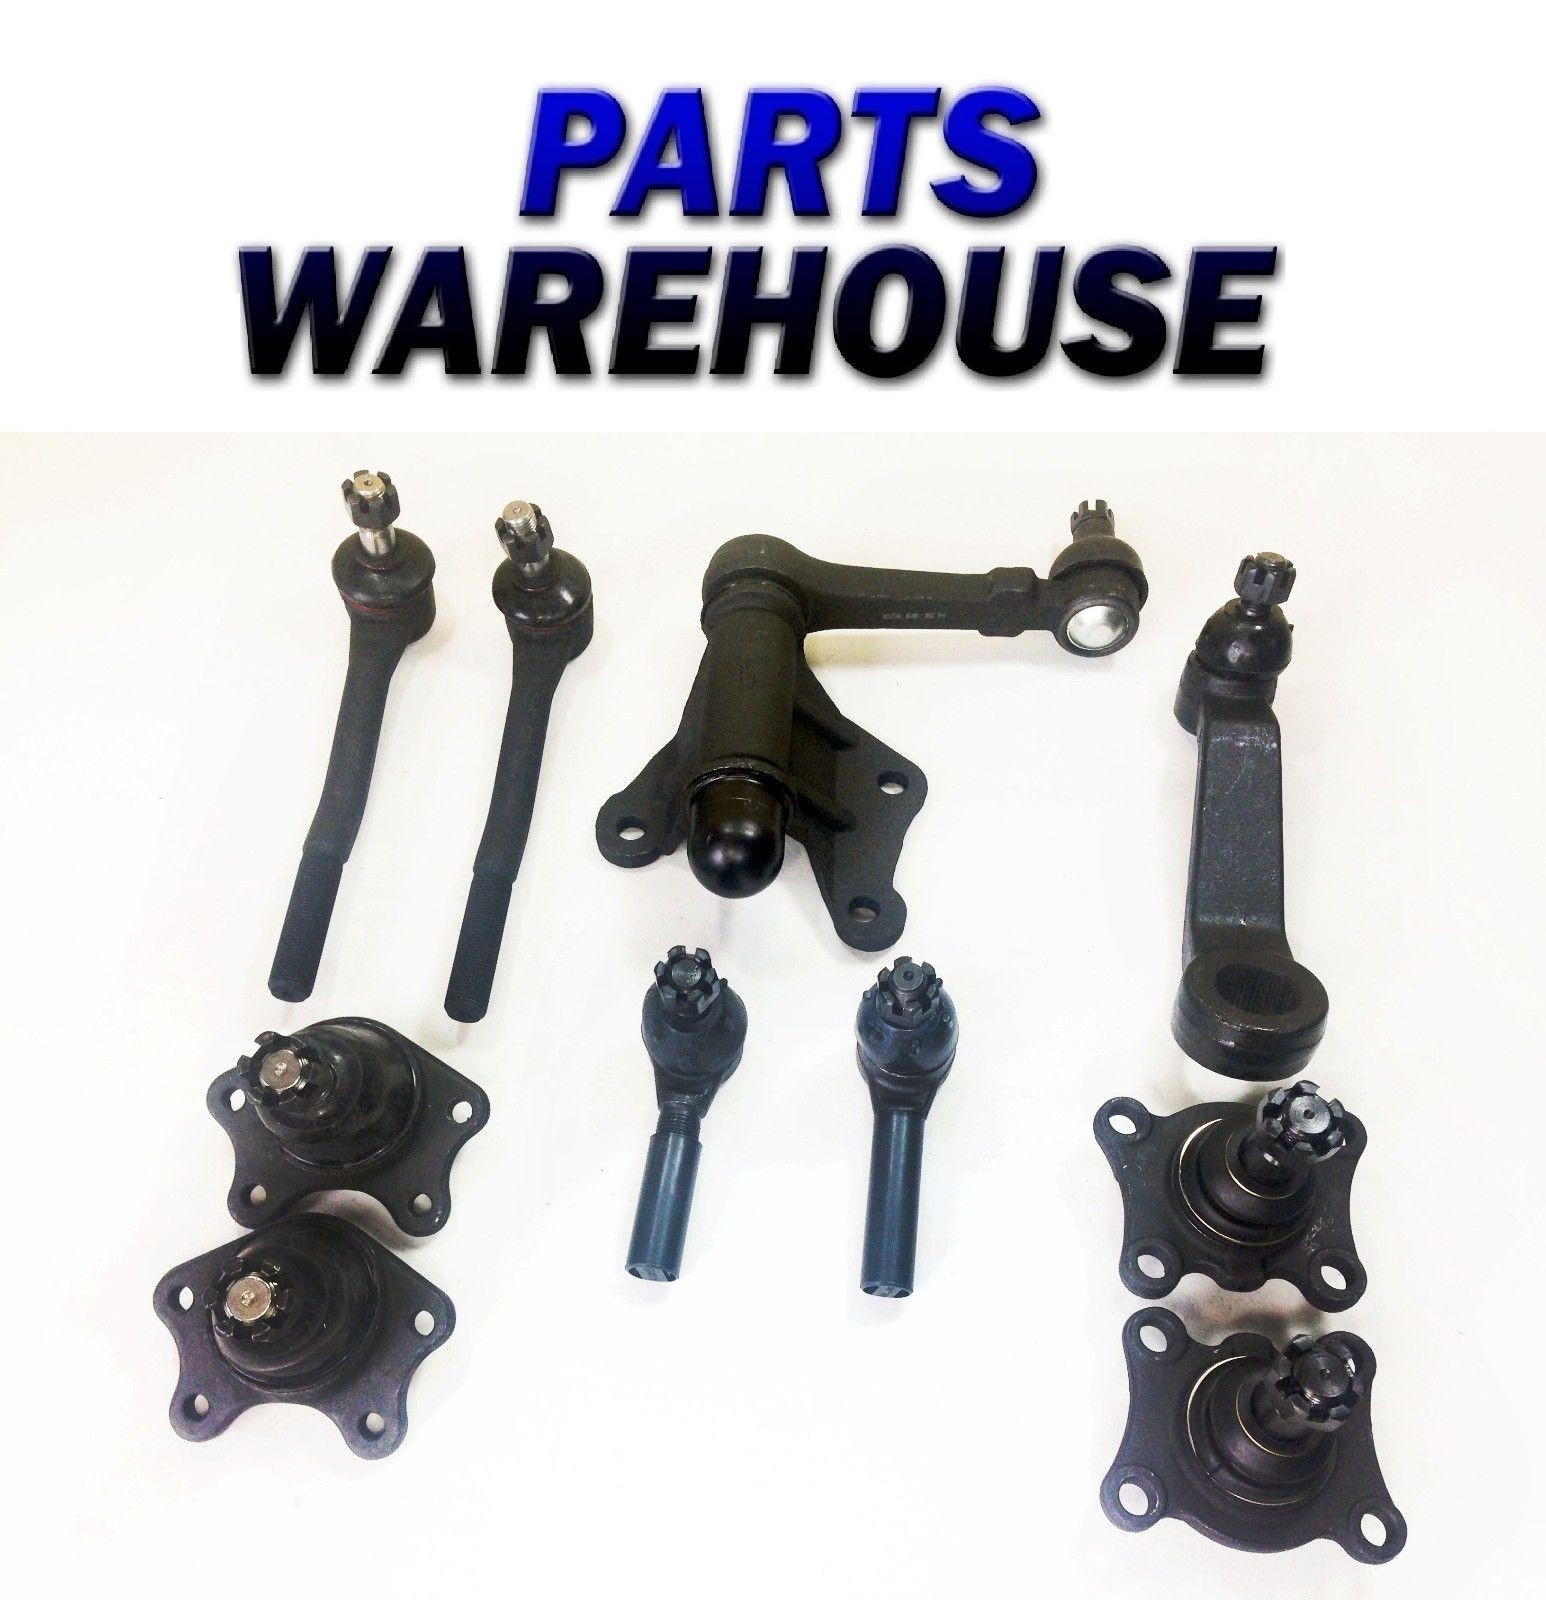 10pc Front Tierod Ball Joint Pitman Idler Arm for Toyota Pickup T100 4Runner 4x4